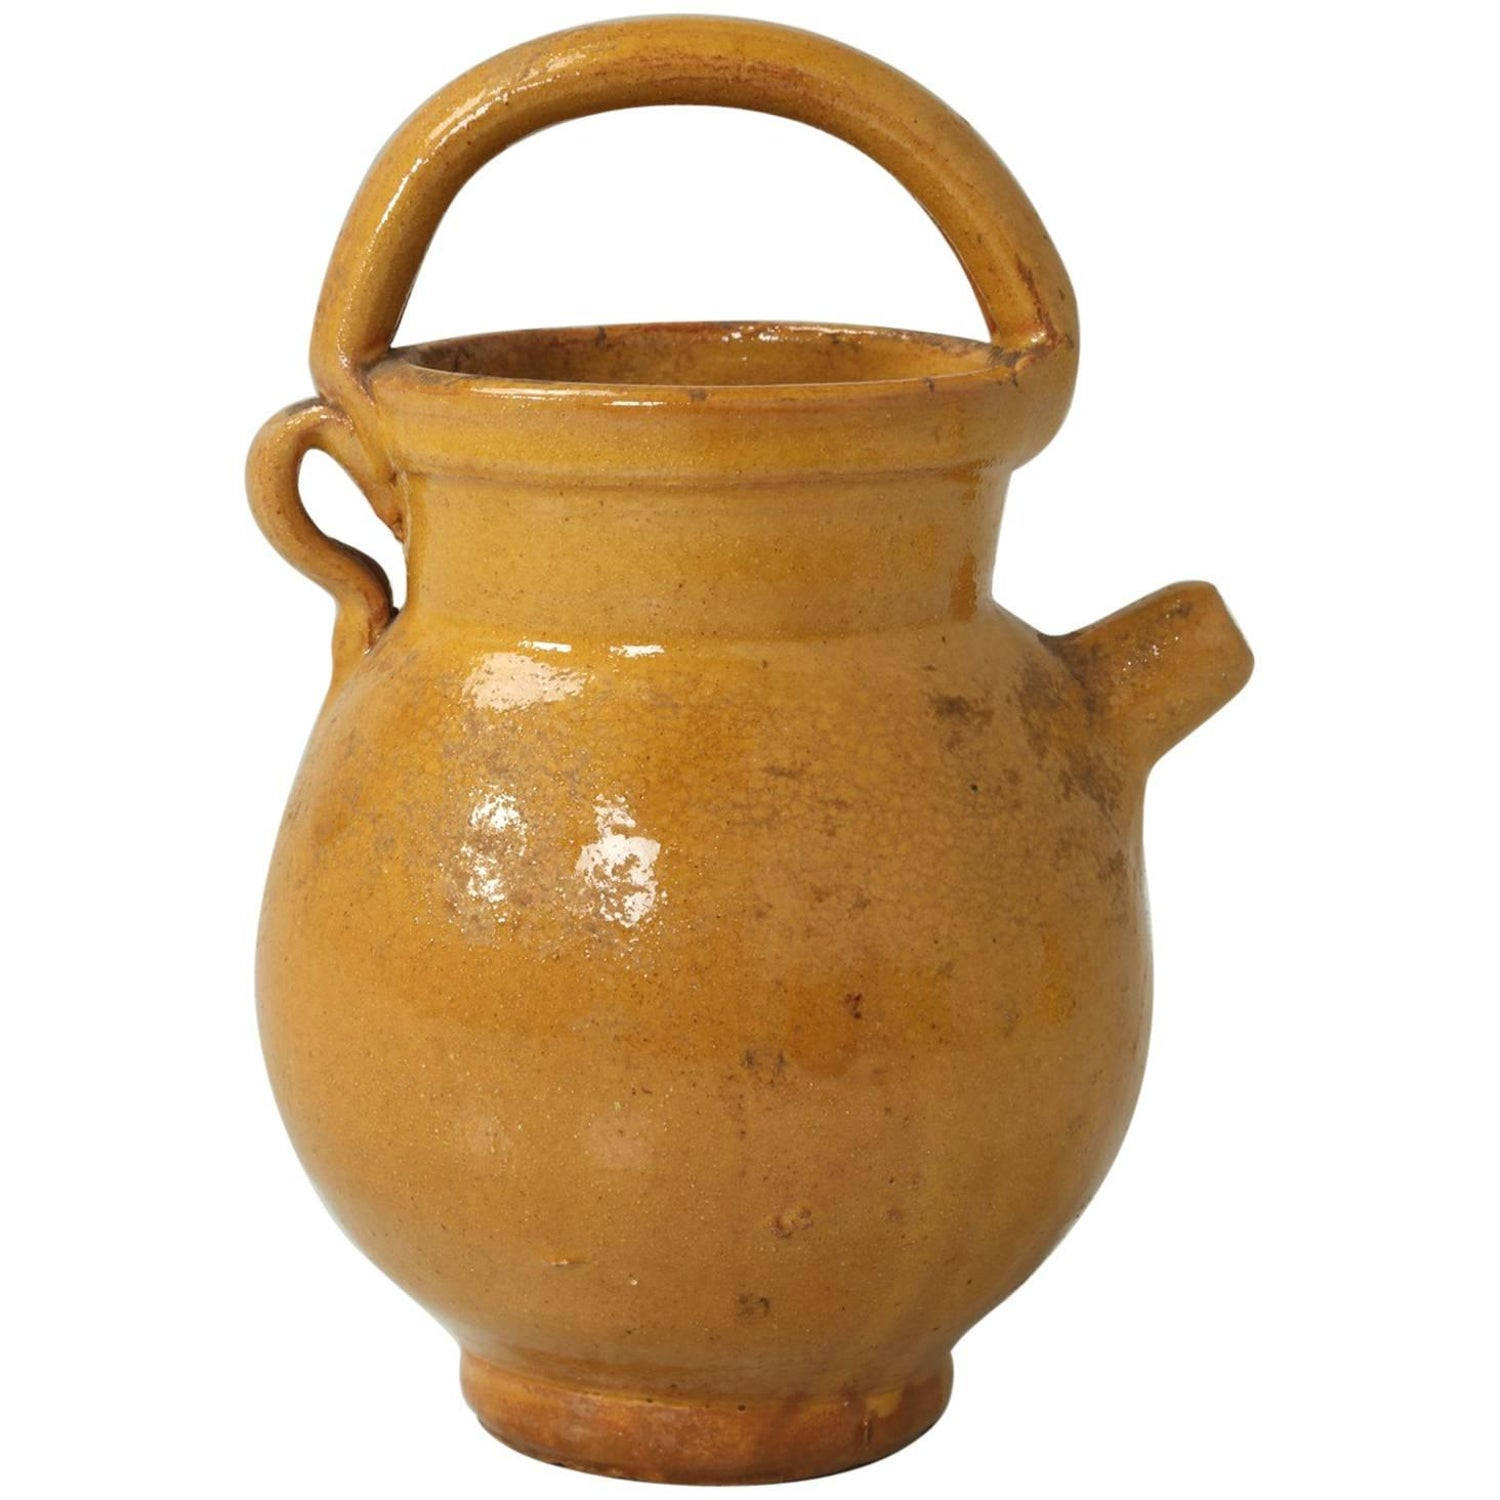 Early 20th century pottery 151 for sale at 1stdibs petite antique french pottery jug with handle and spout reviewsmspy